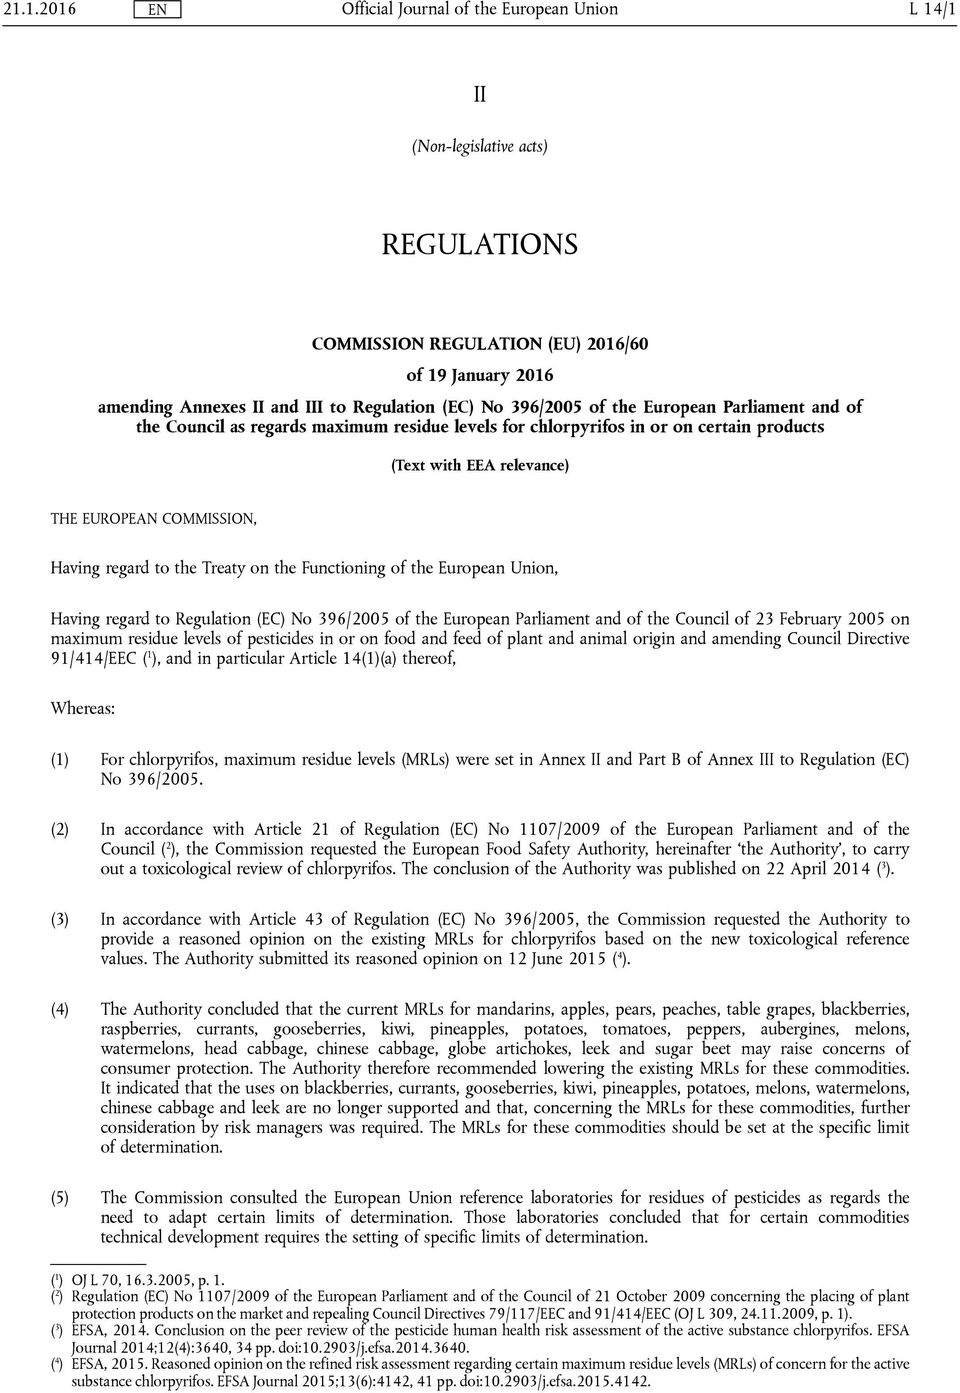 European Union, Having regard to Regulation (EC) No 396/2005 of the European Parliament and of the Council of 23 February 2005 on maximum residue levels of pesticides in or on food and feed of plant